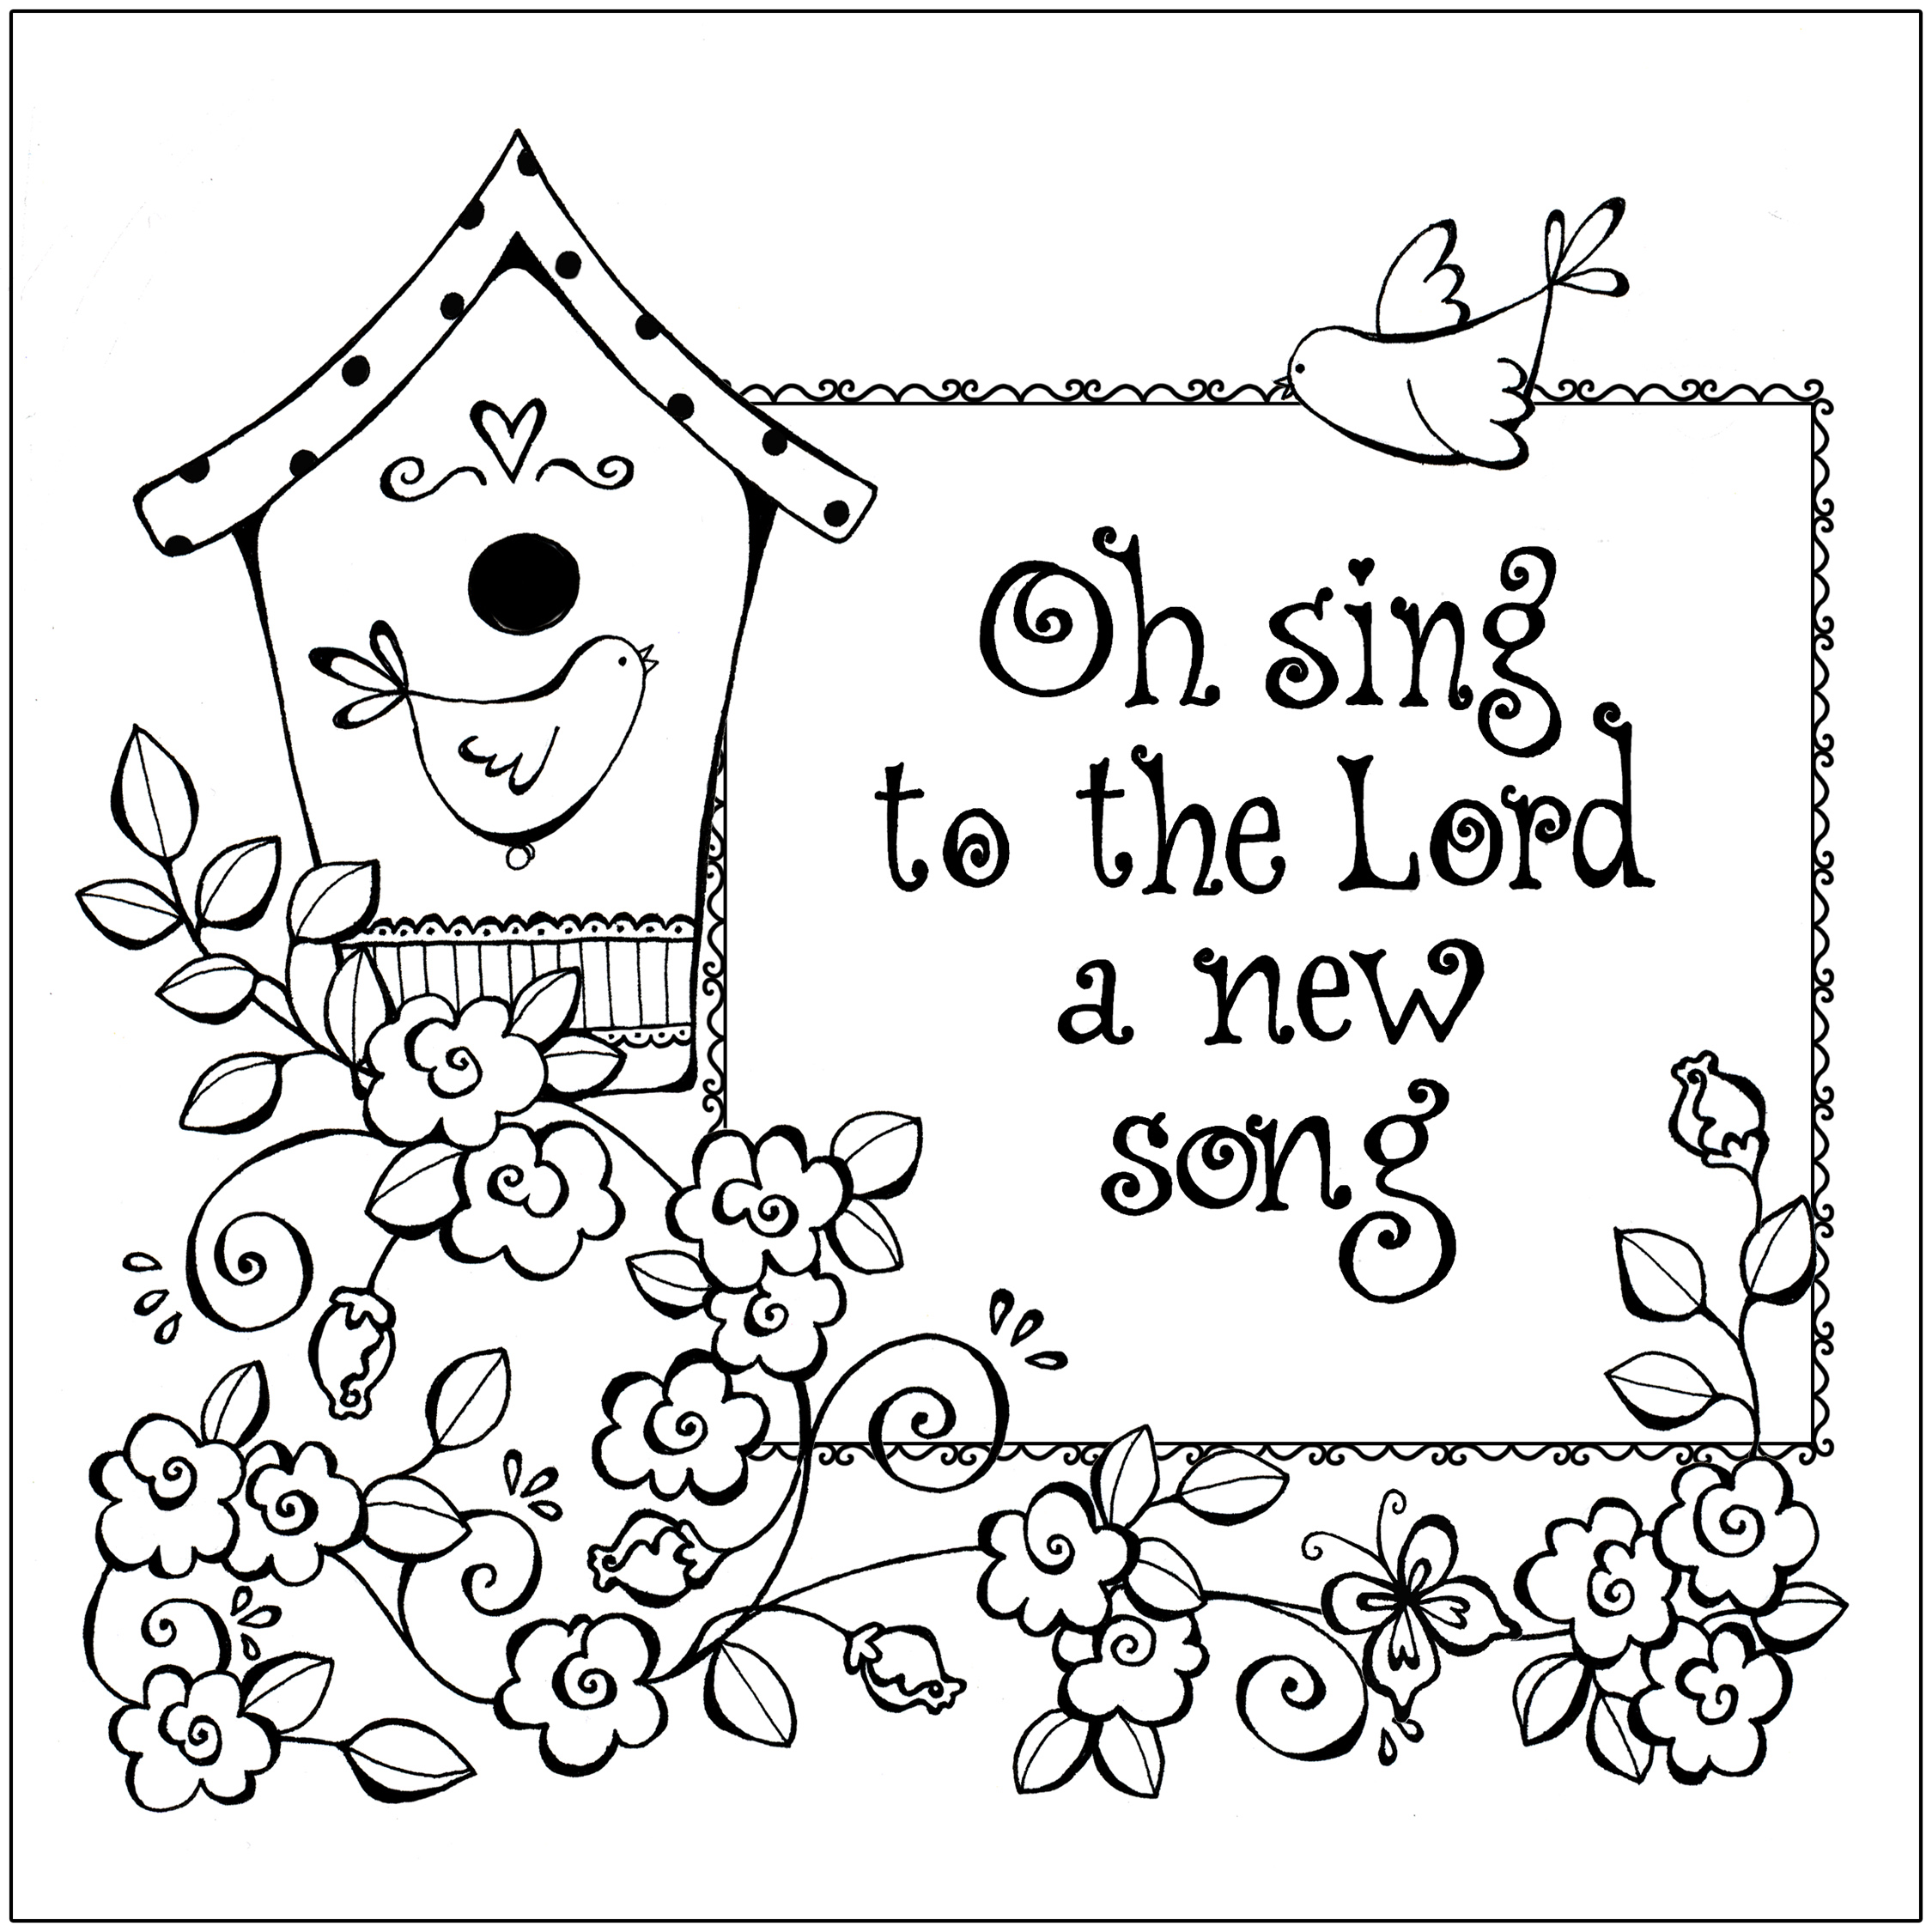 children christian coloring pages - photo#15